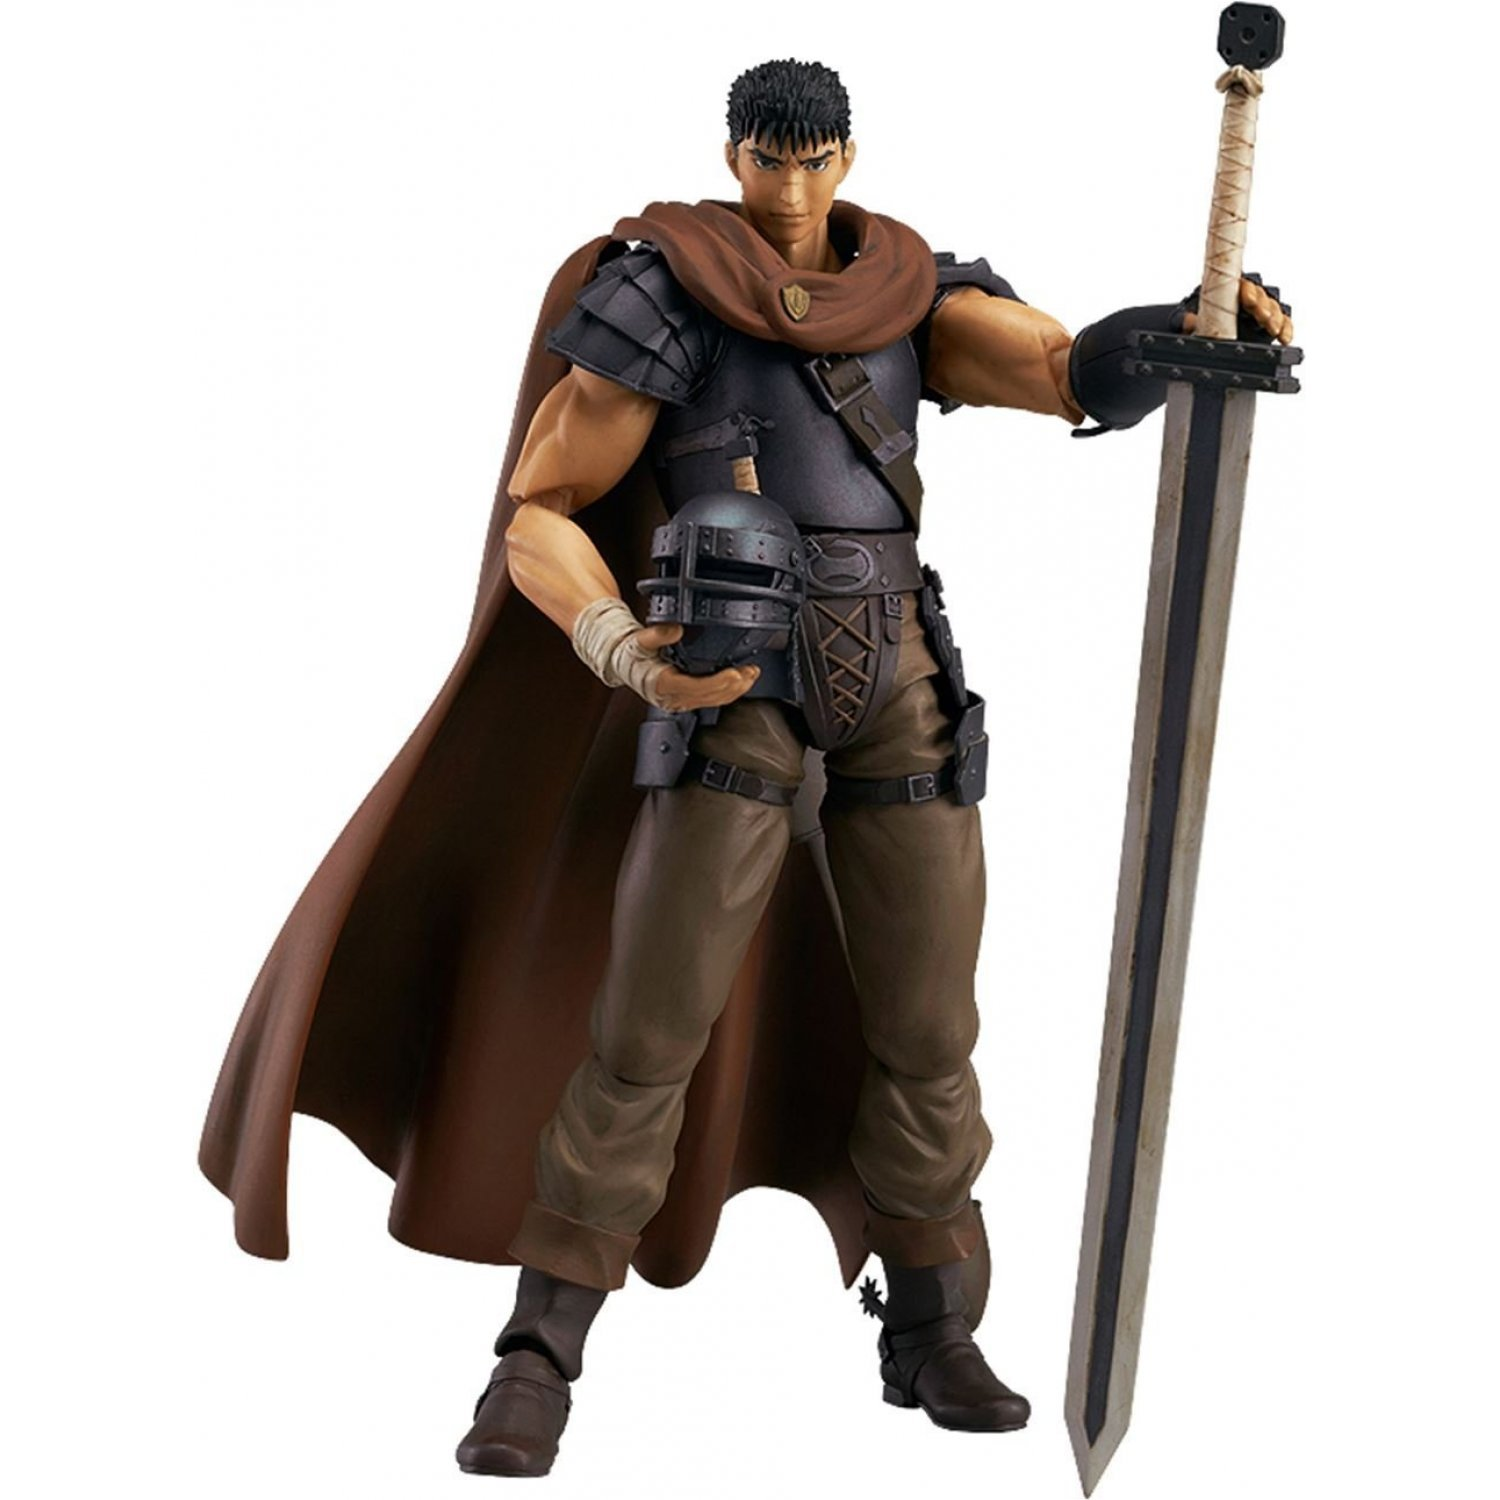 Figma Berserk Non Scale Pre-Painted PVC Figure: Guts Band